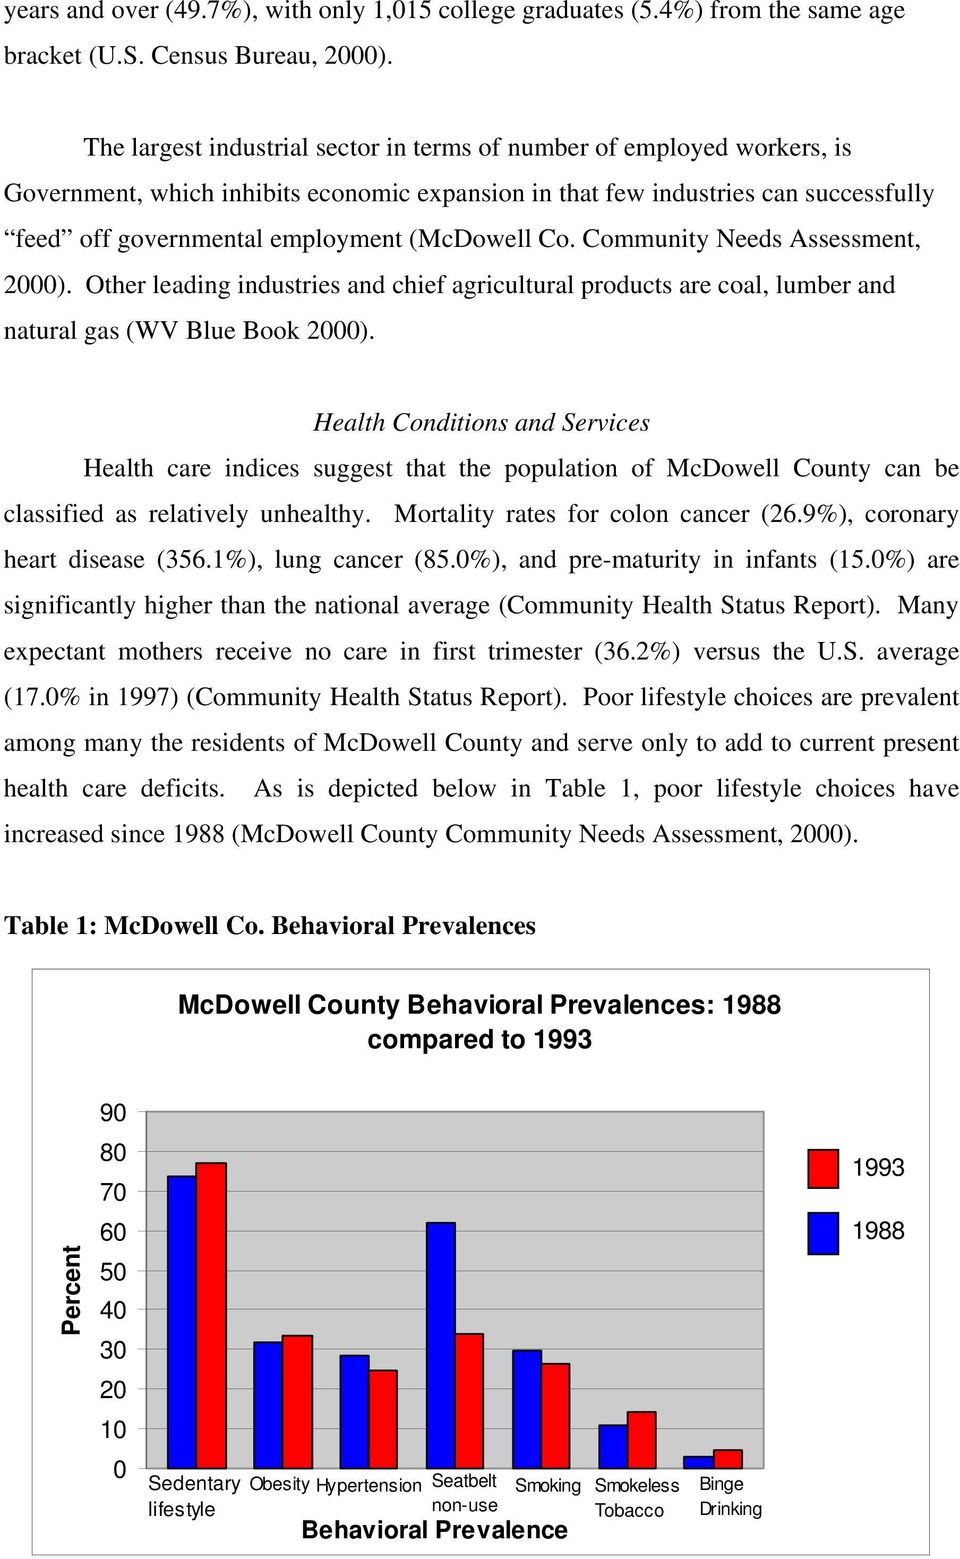 (McDowell Co. Community Needs Assessment, 2000). Other leading industries and chief agricultural products are coal, lumber and natural gas (WV Blue Book 2000).